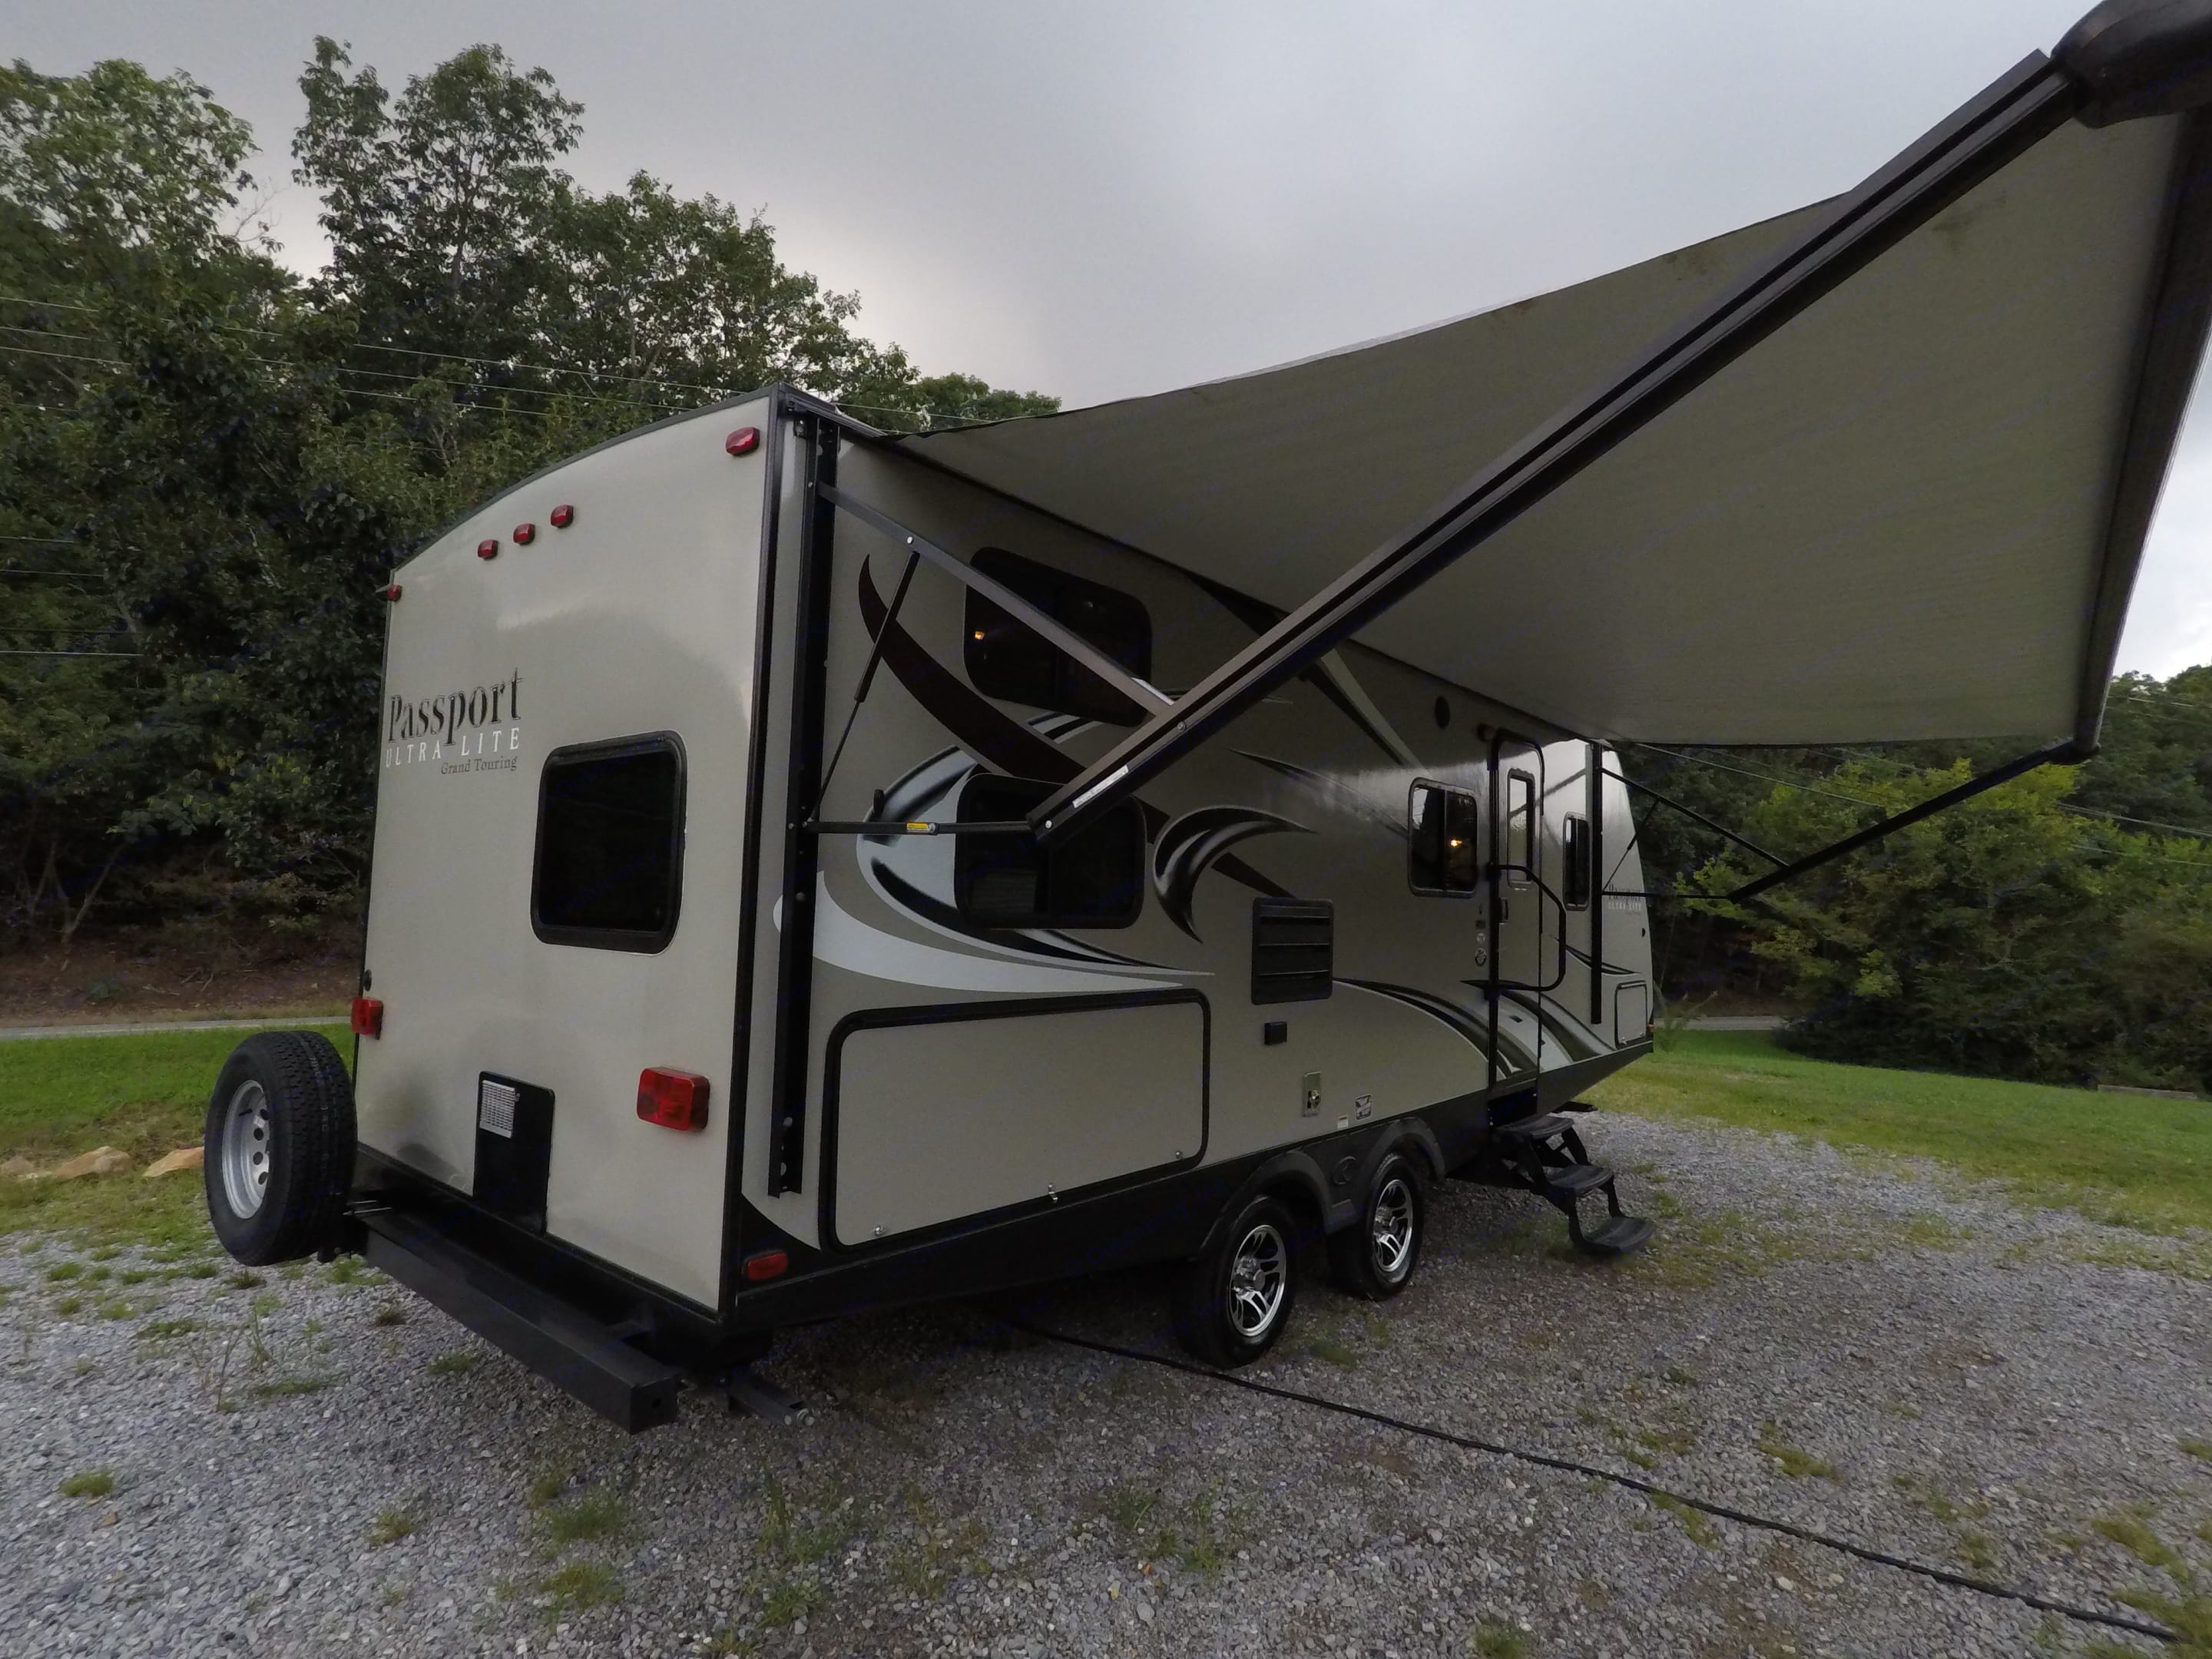 Huge awning sets this camper apart. It runs almost the entire length of the camper, *including* the outdoor kitchen!  **Many camper awnings do *not* cover the outdoor kitchen area!  It's one of our favorite features! . Keystone Passport 2400BH Grand Touring * UltraLite 2016